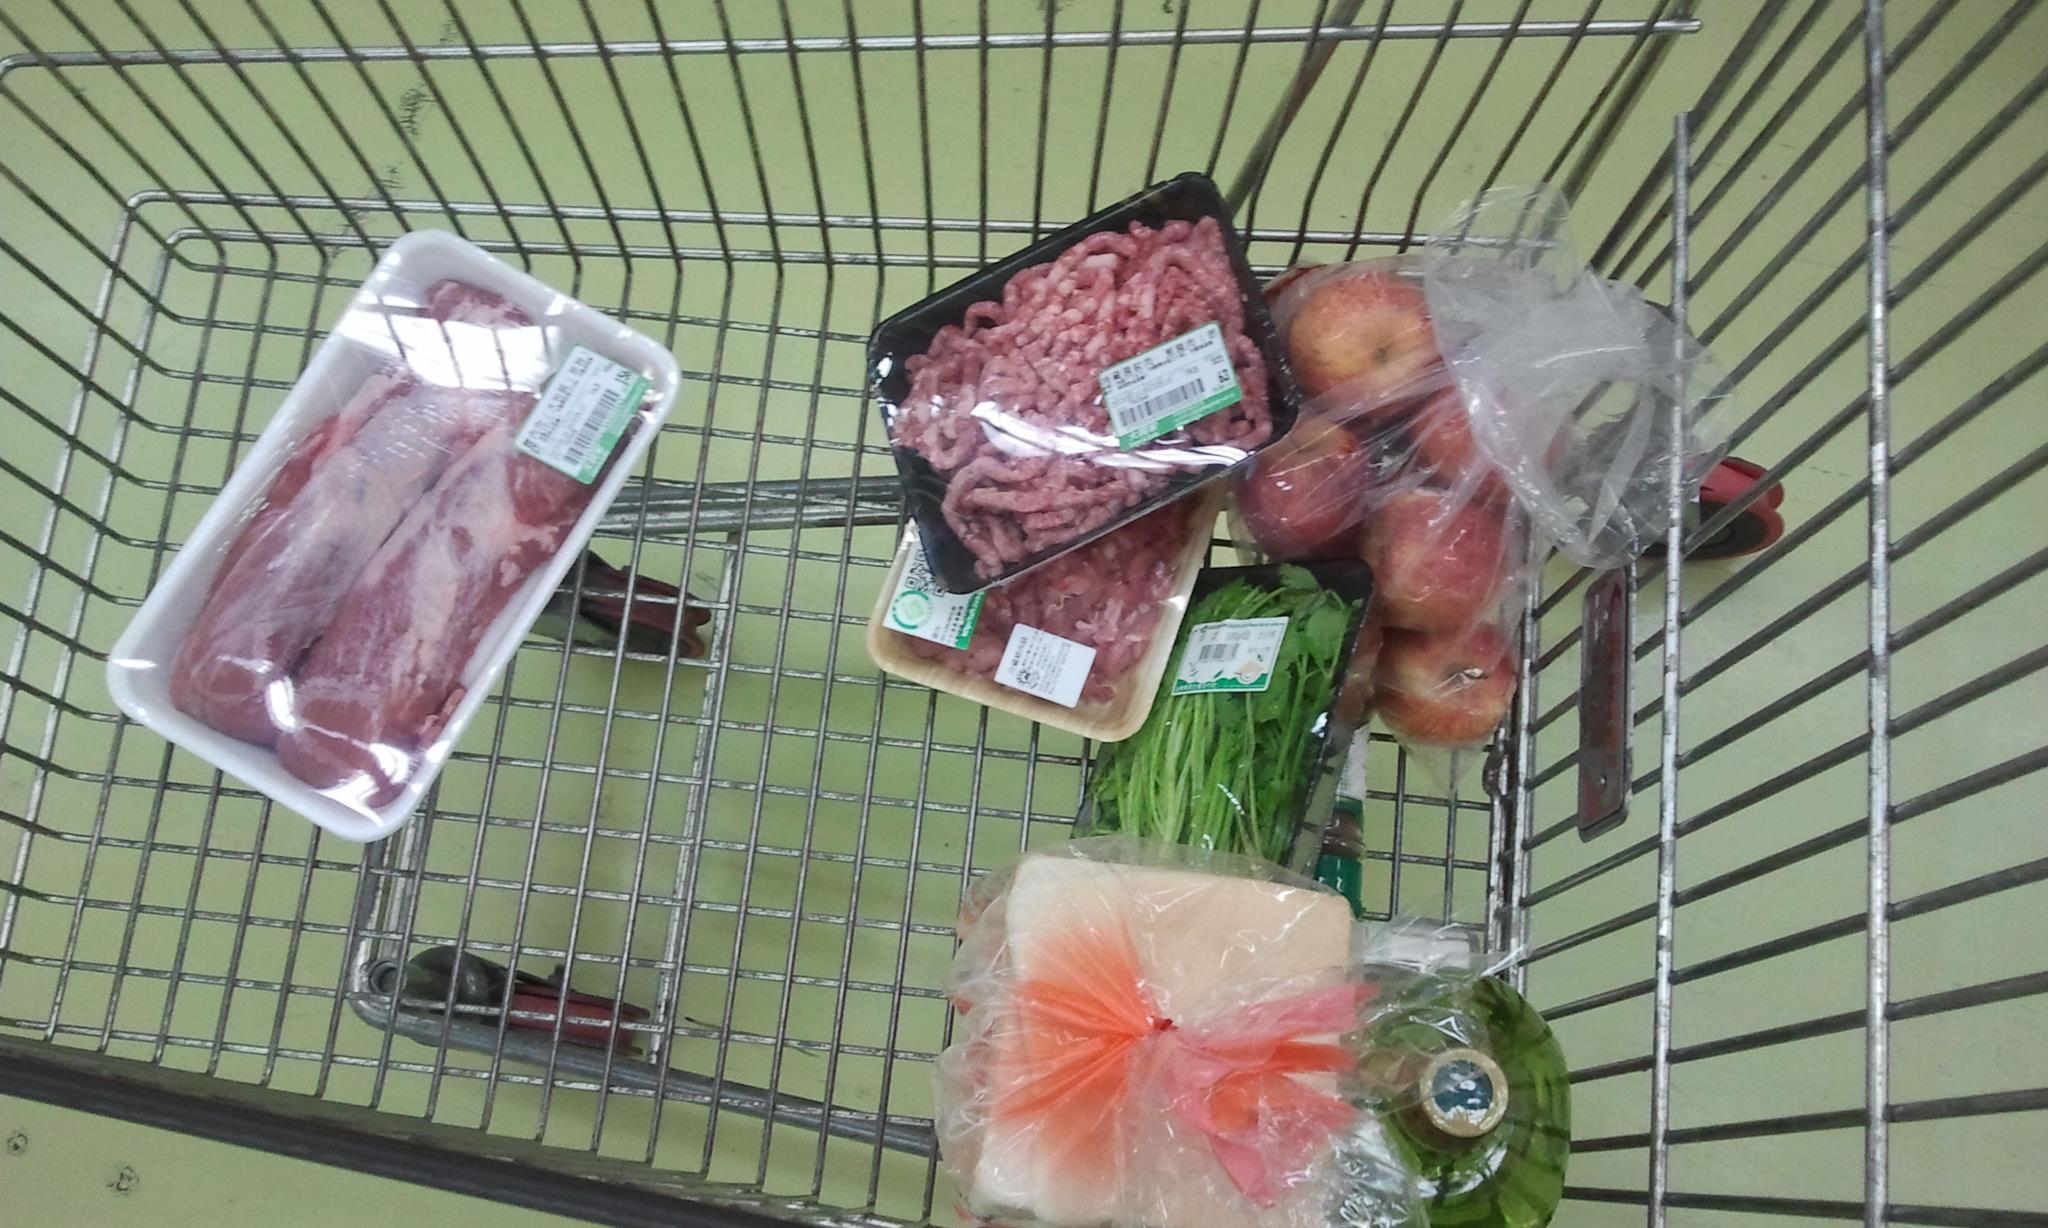 What I bought at the supermarket